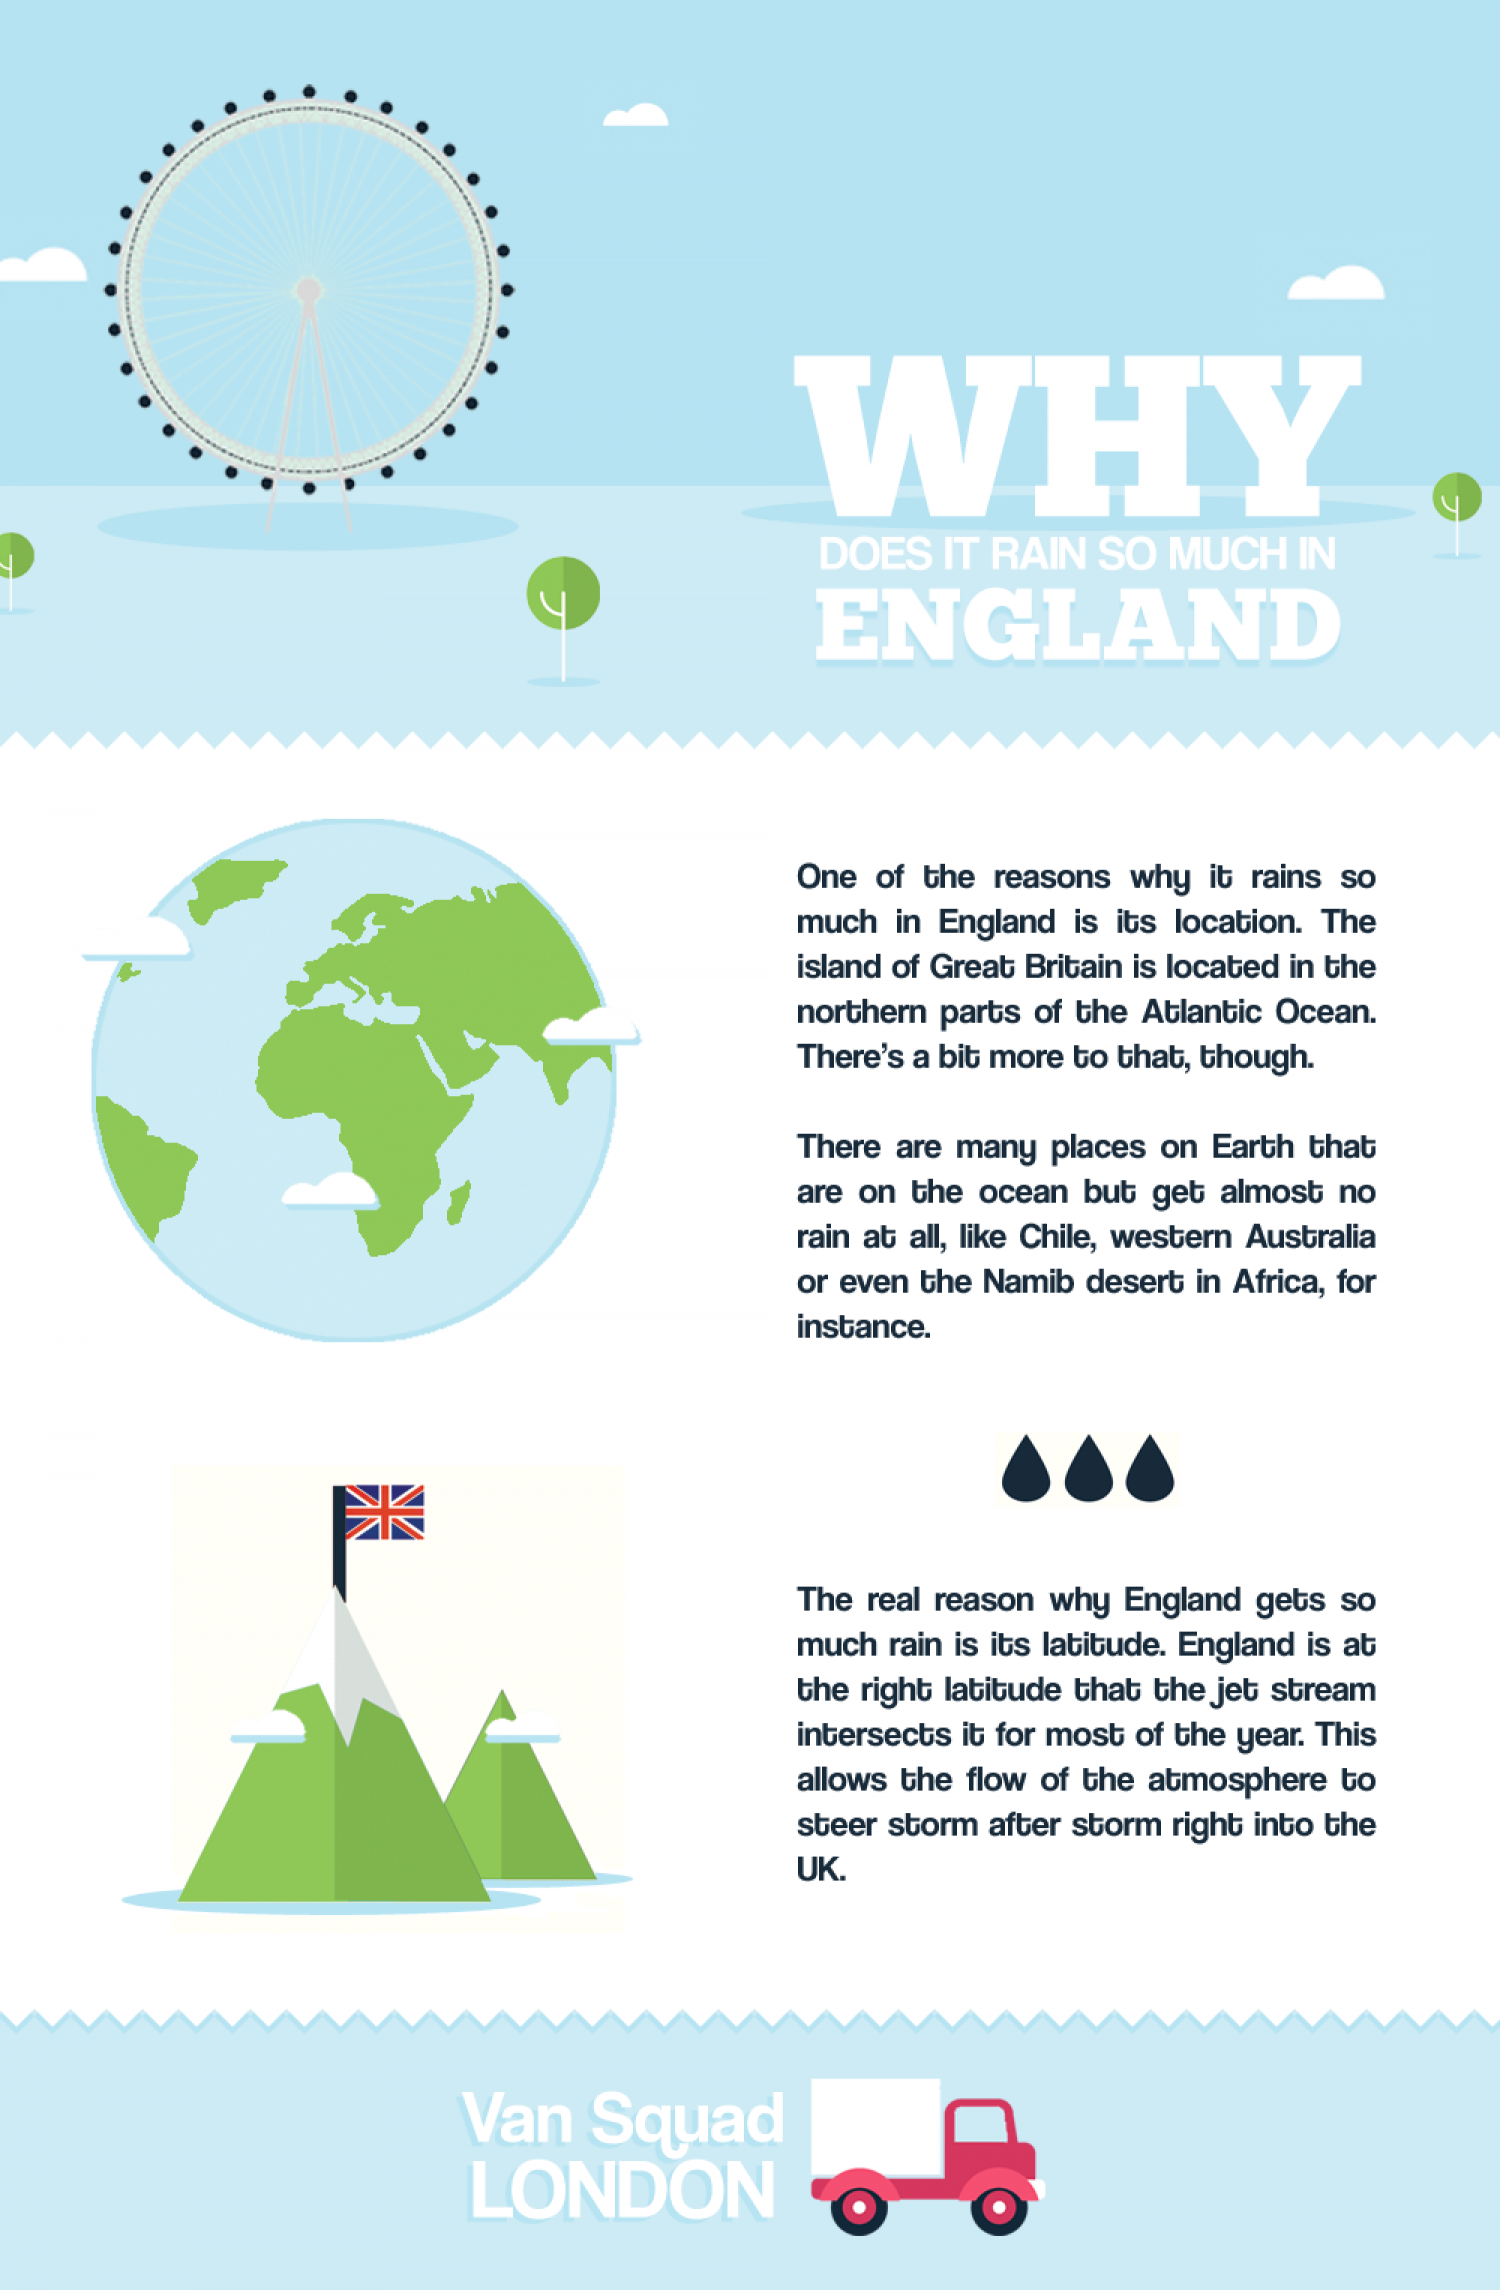 Why Does it Rain so Much in England? Infographic